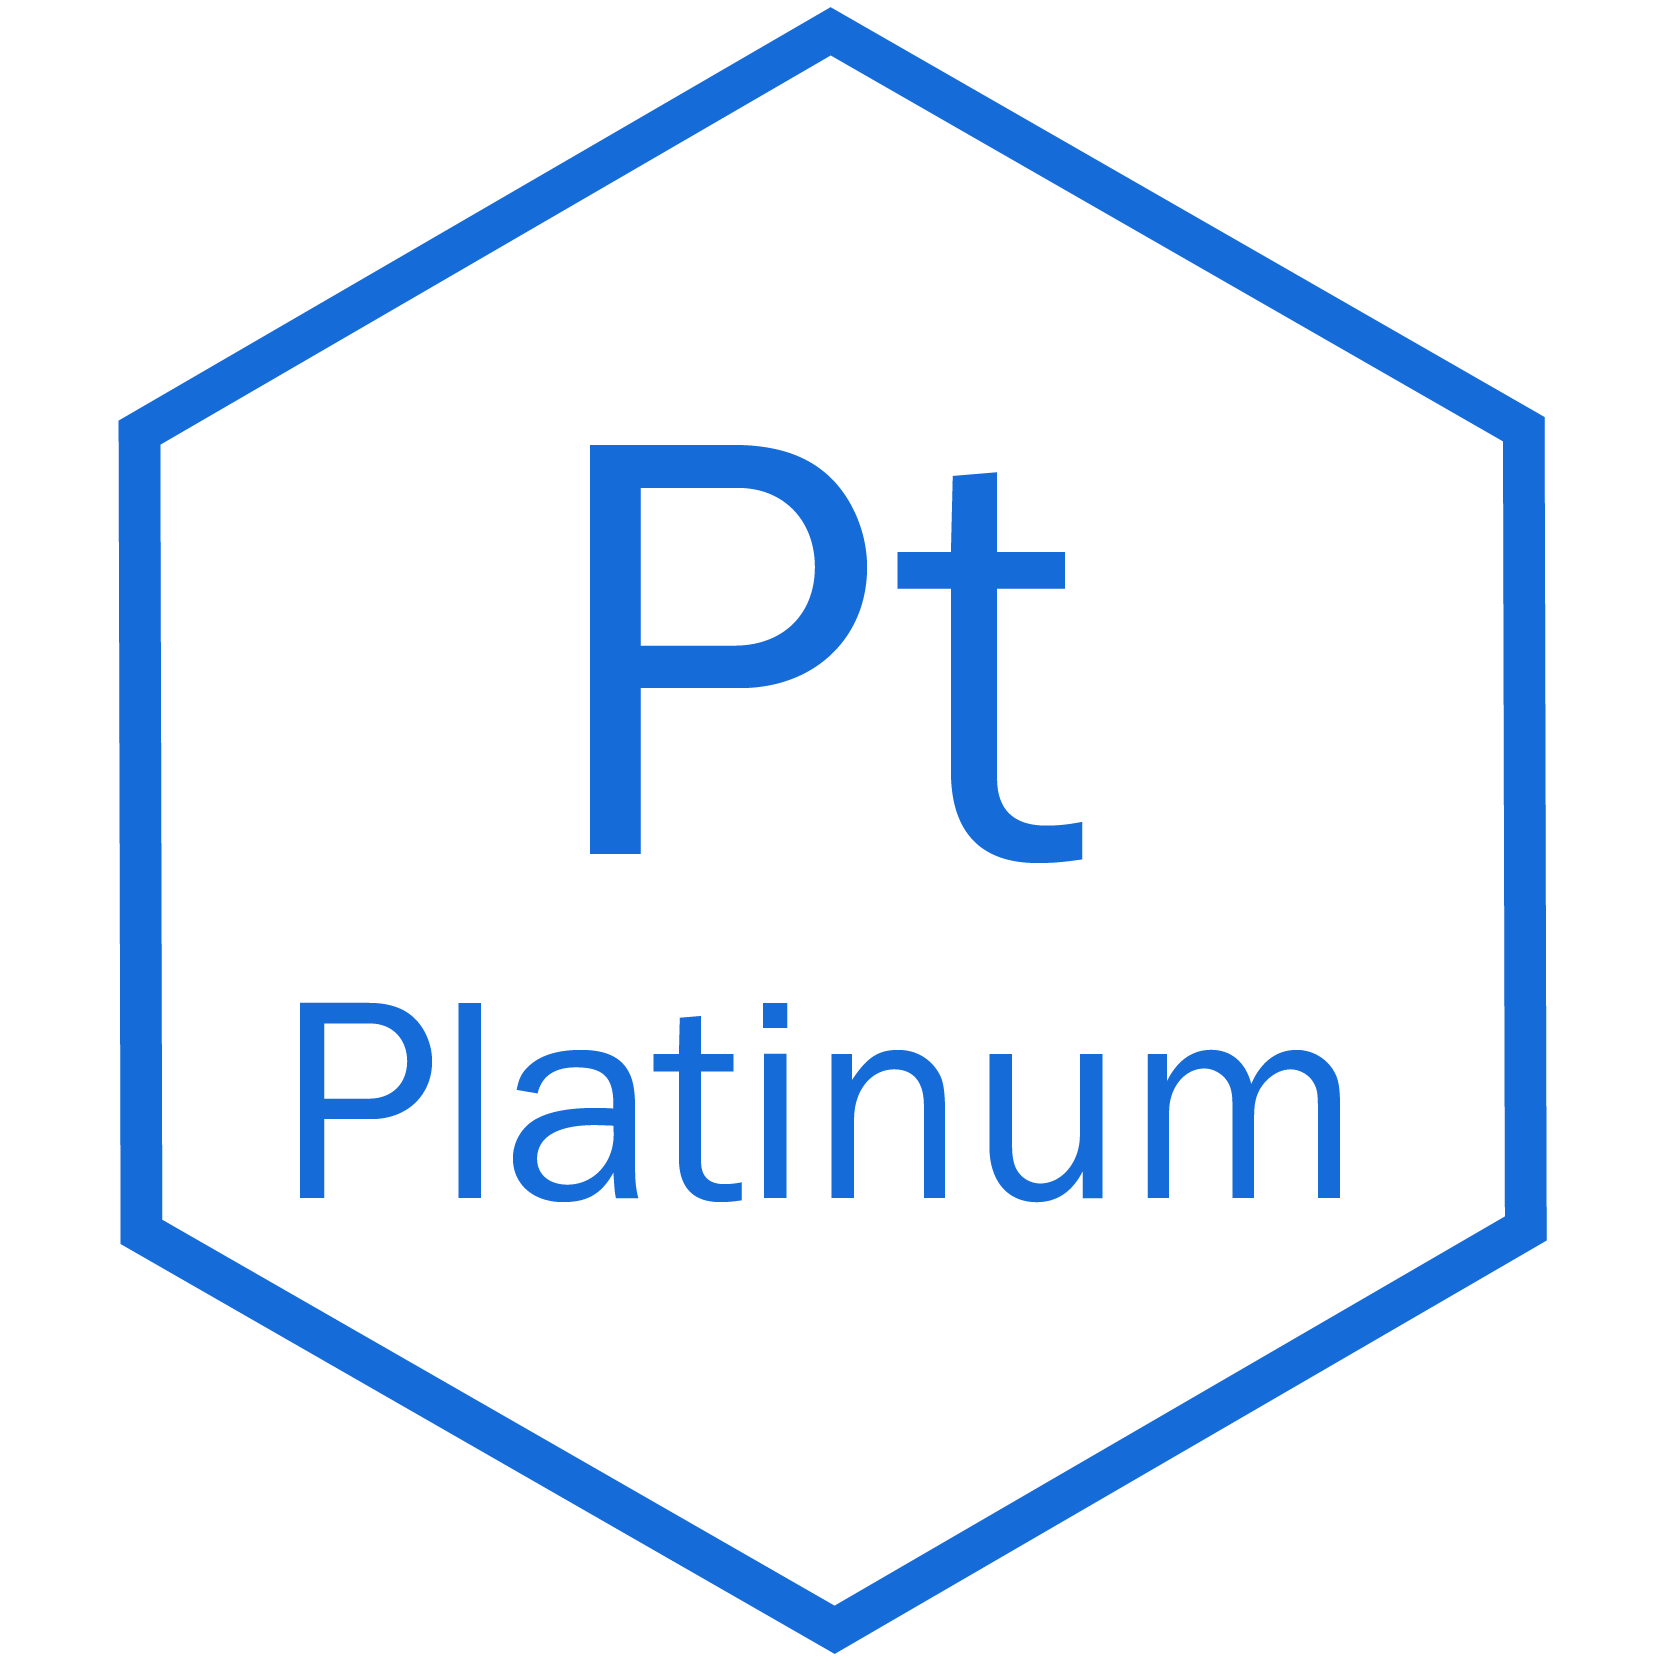 support_platinum-01